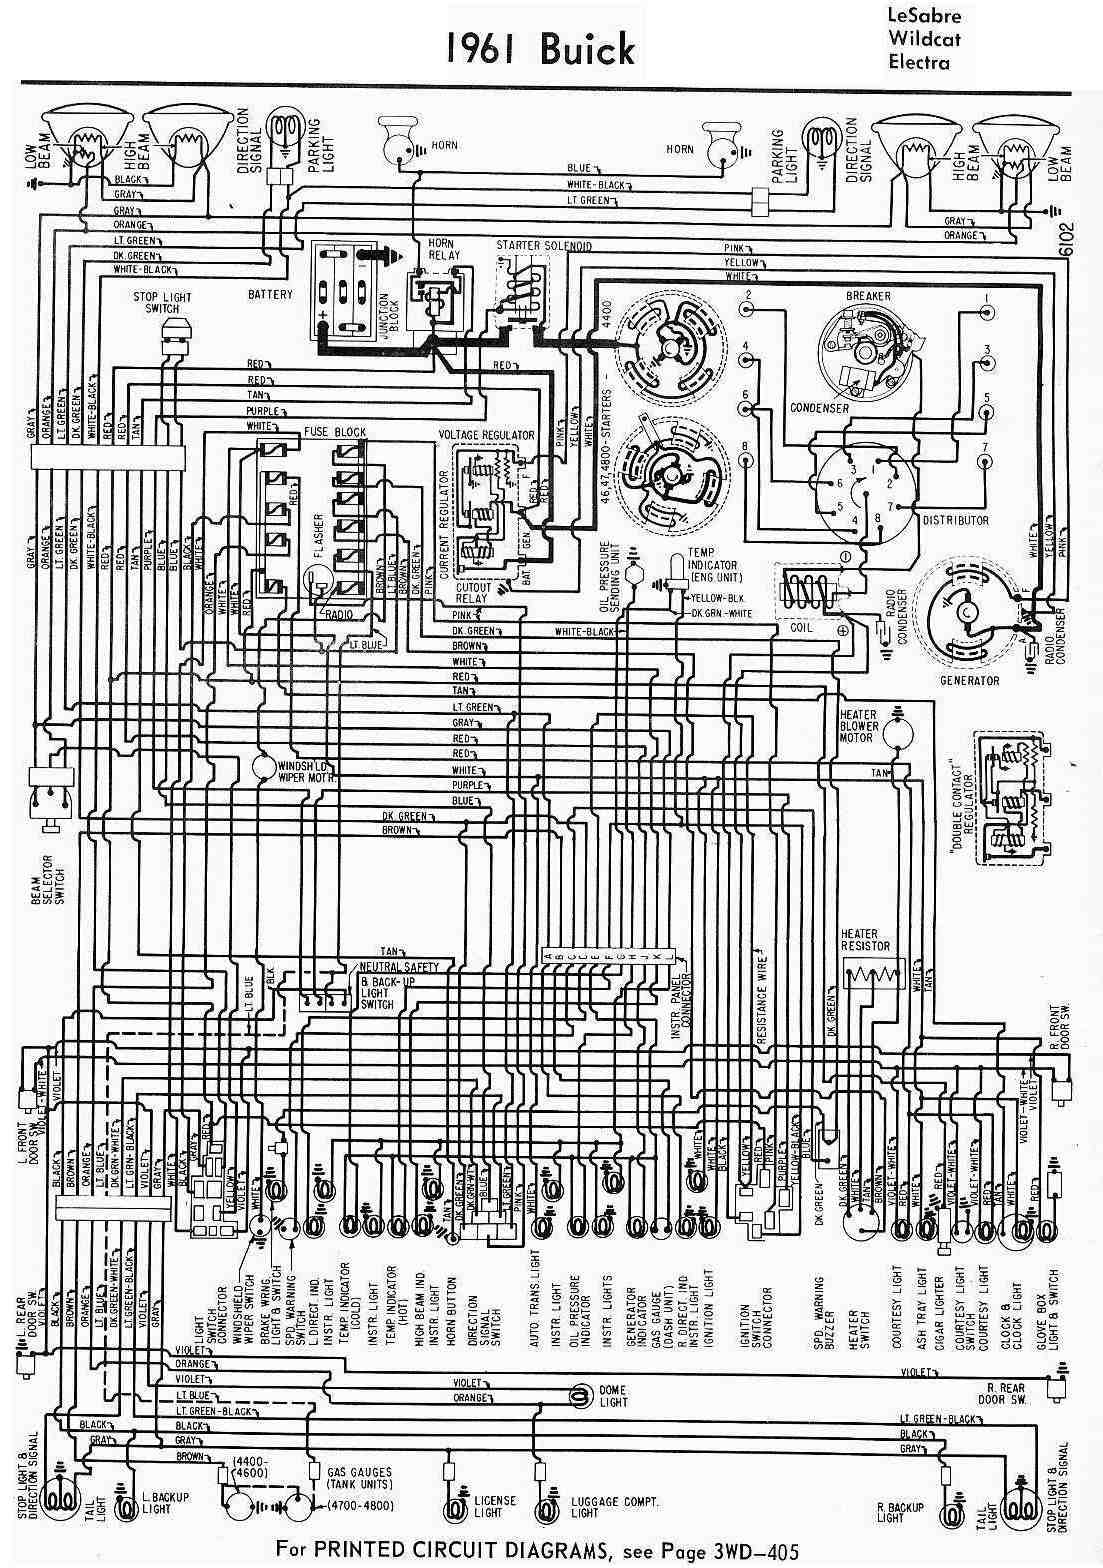 medium resolution of wiring diagram for a 1995 buick regal get free image about wiring 1995 buick lesabre wiring